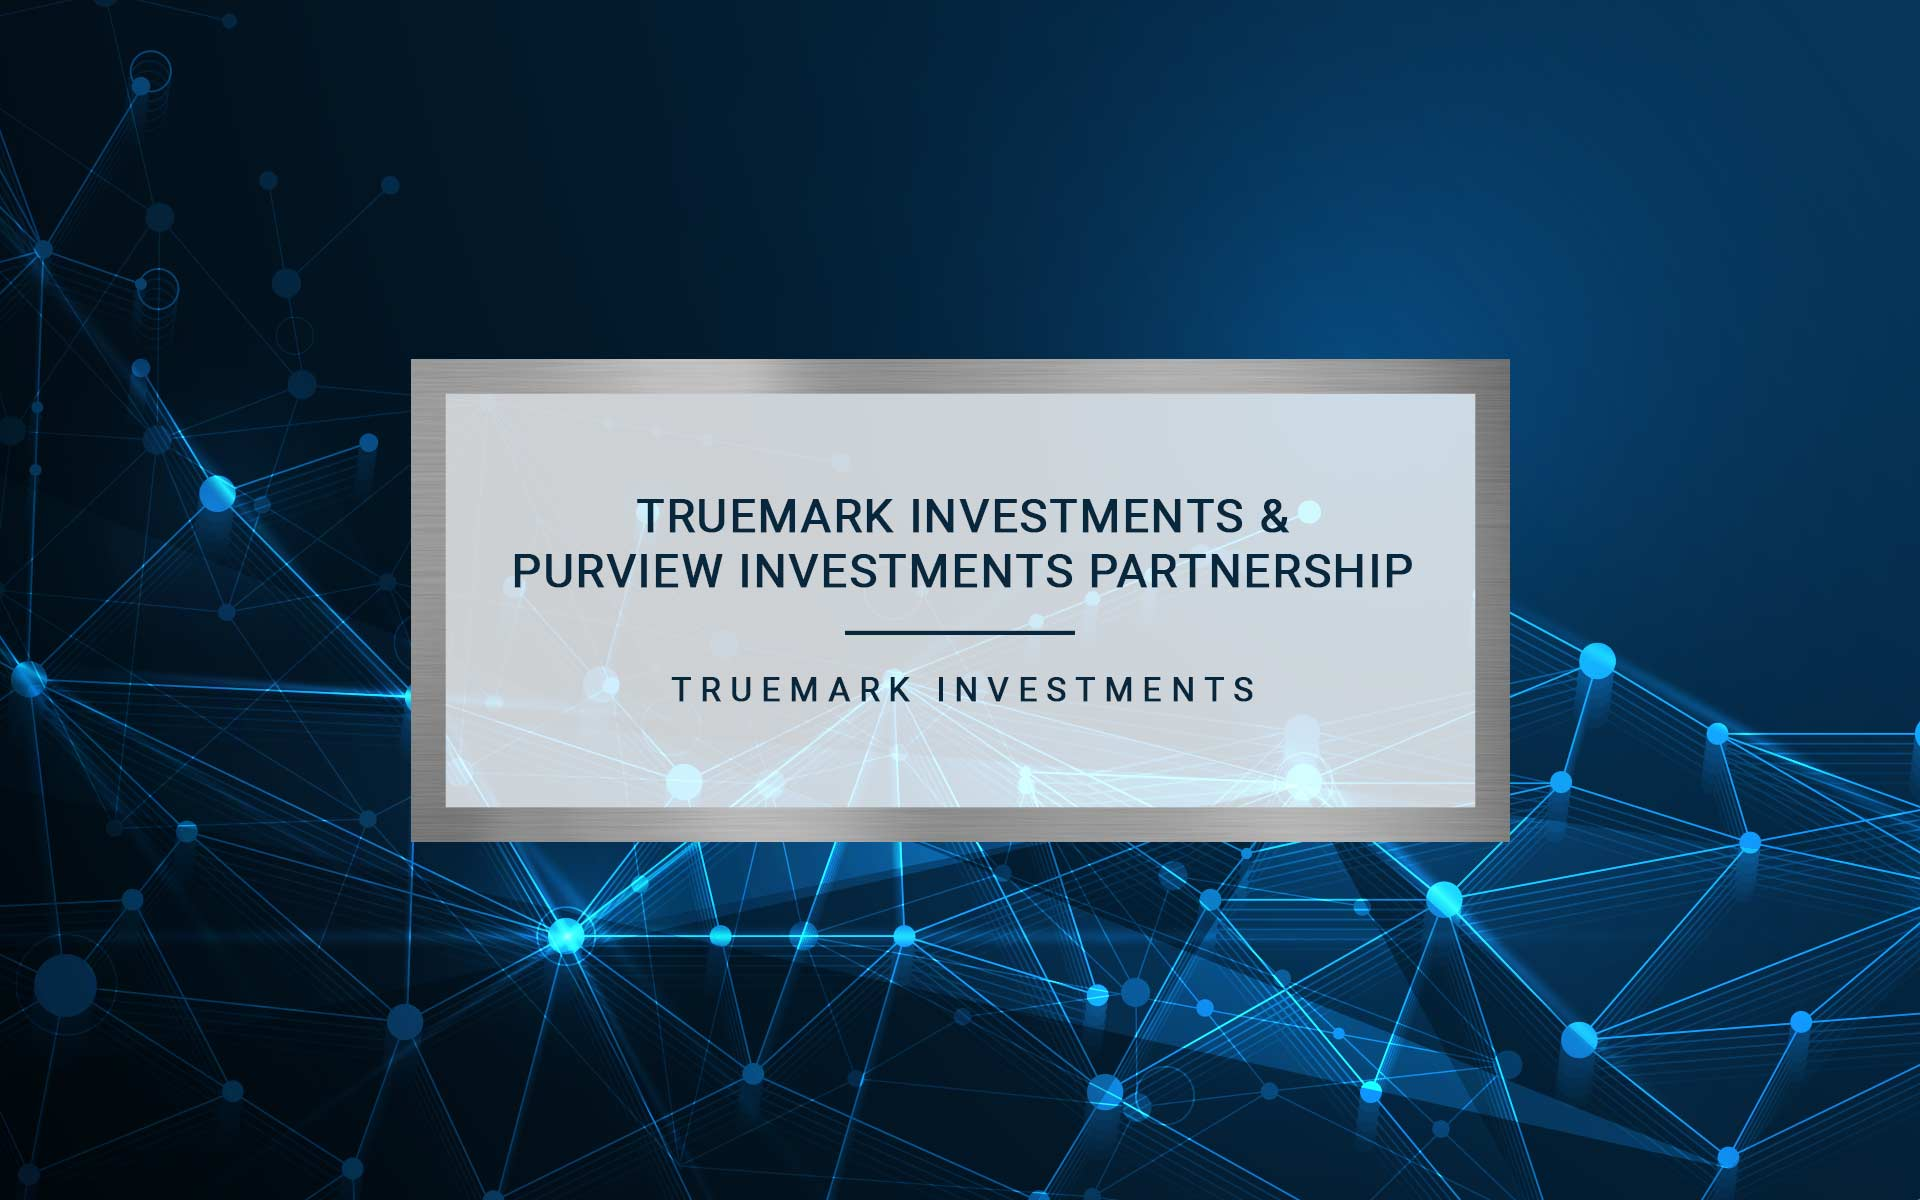 TRUEMARK INVESTMENTS AND PURVIEW INVESTMENTS